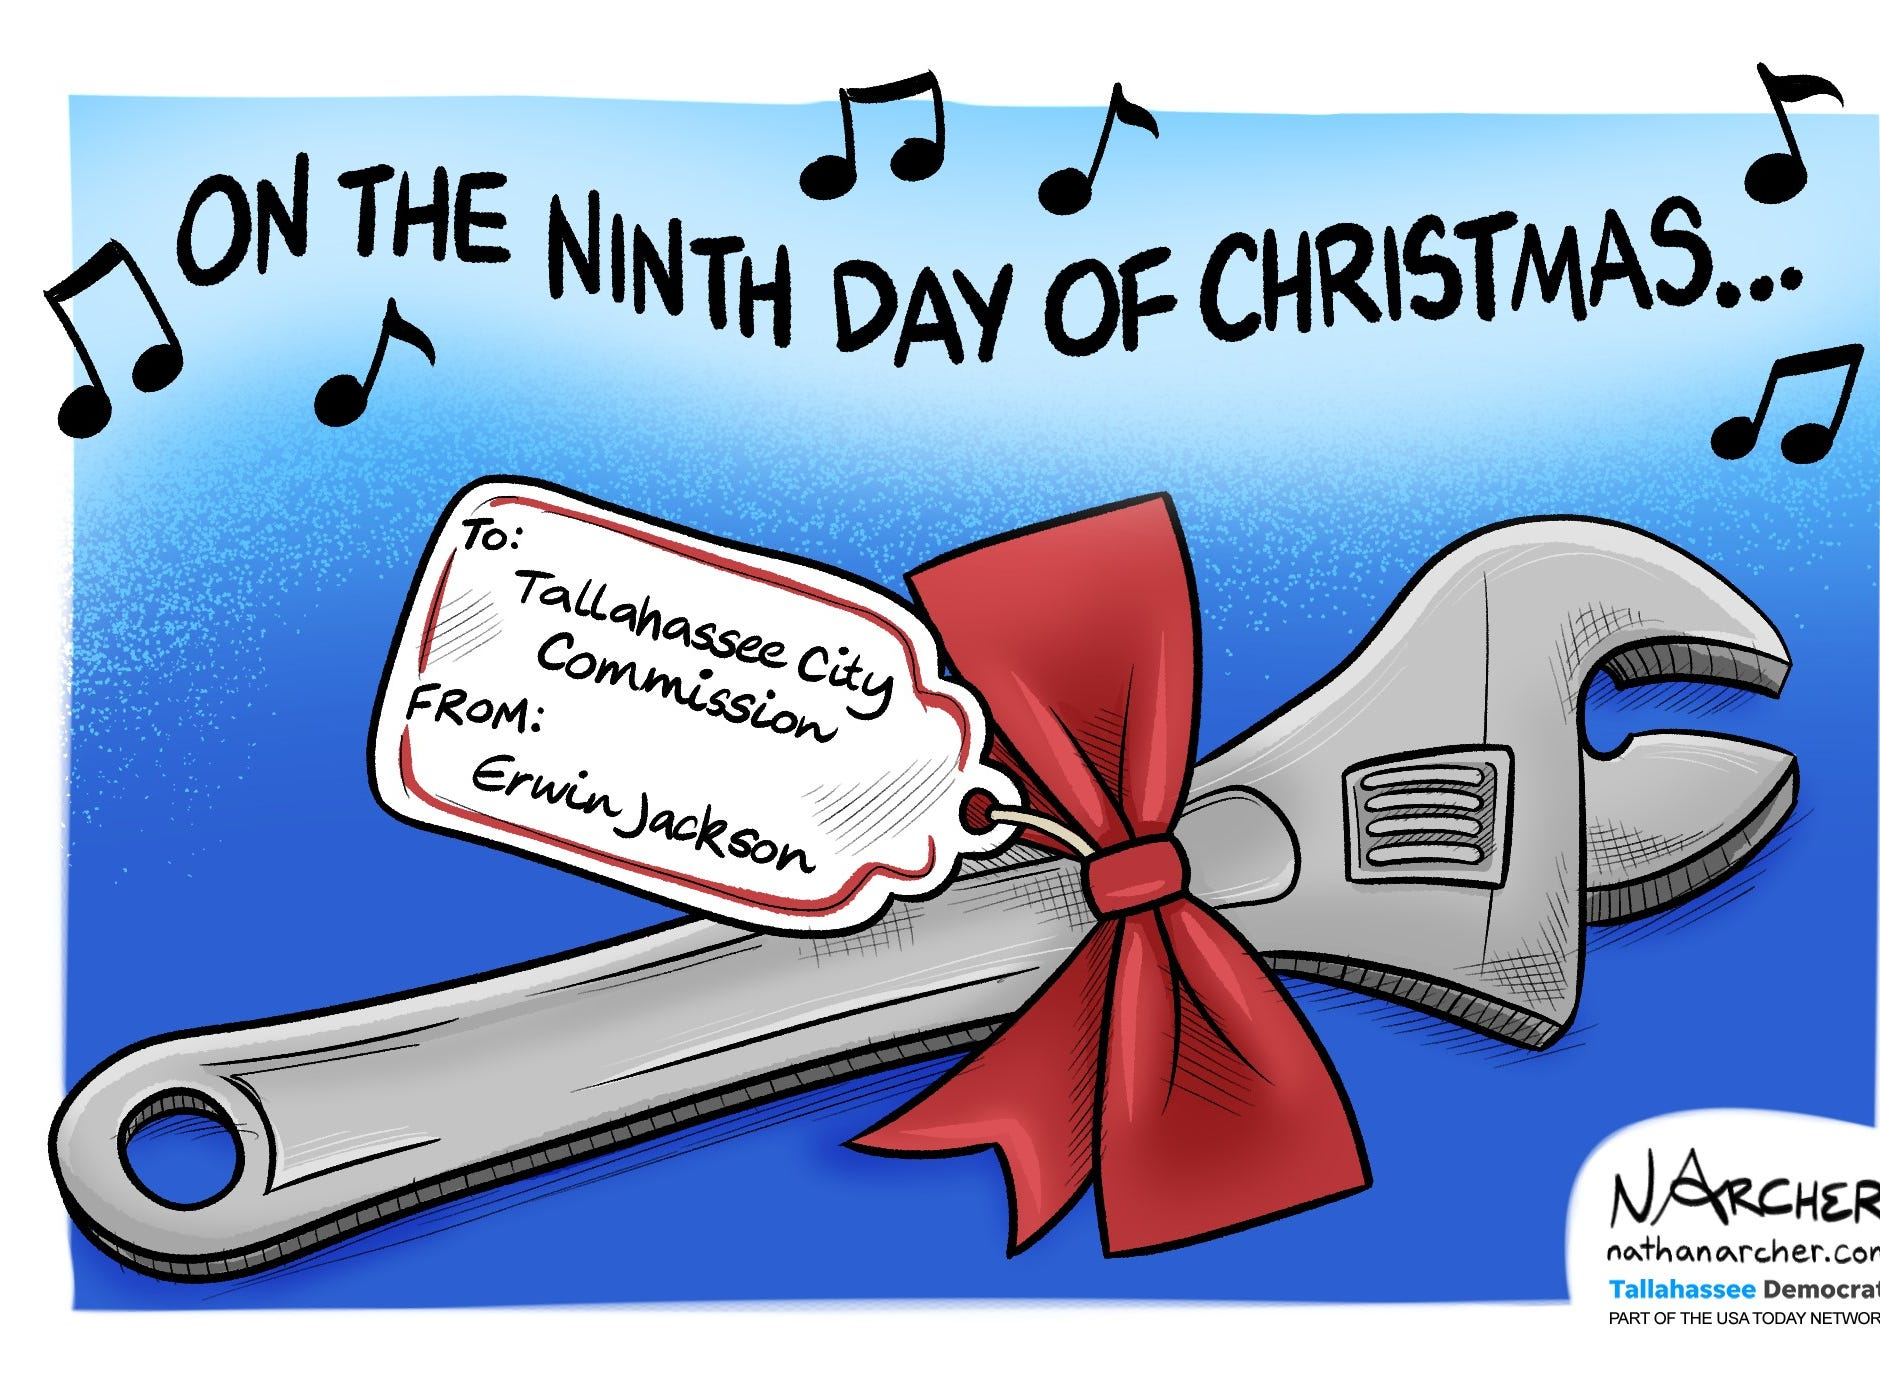 On the ninth day of Christmas...